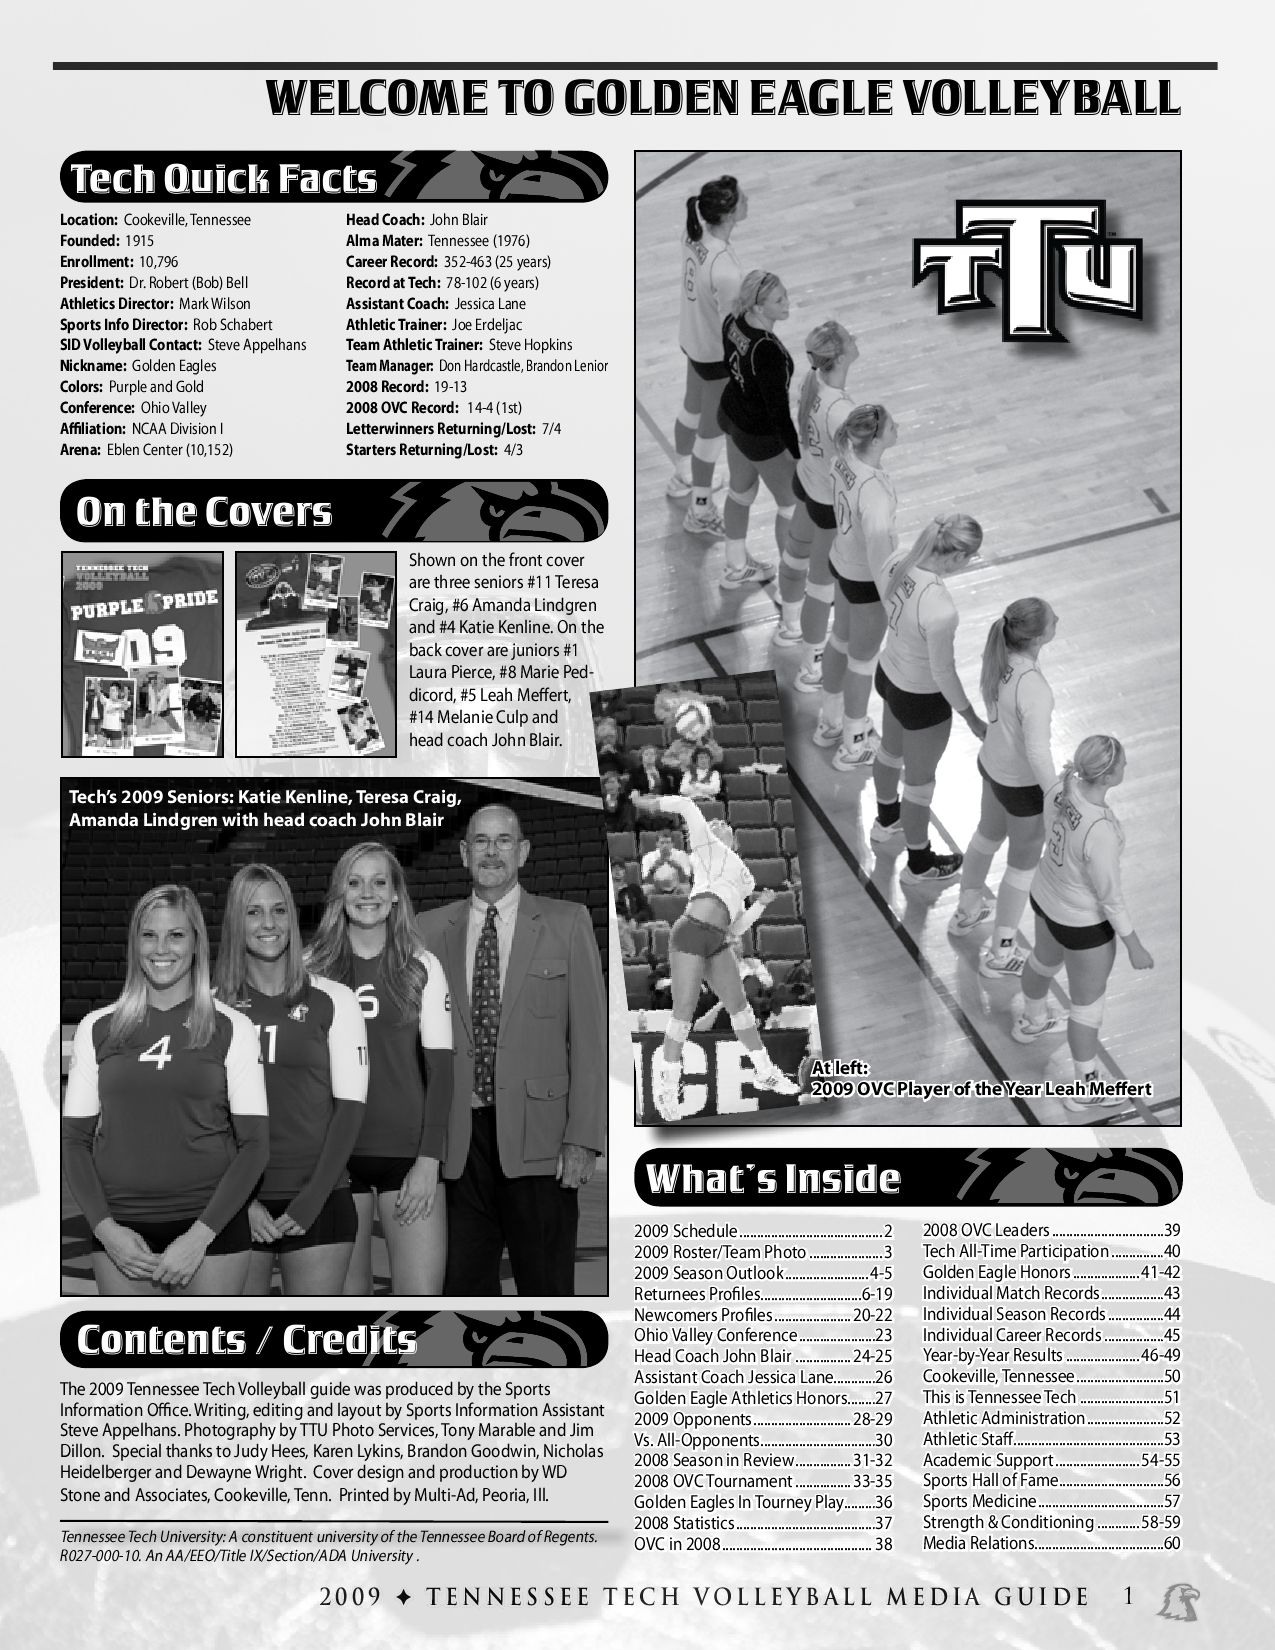 2009 Tennessee Tech Volleyball Media Guide by Tennessee Tech Sports  Information - issuu